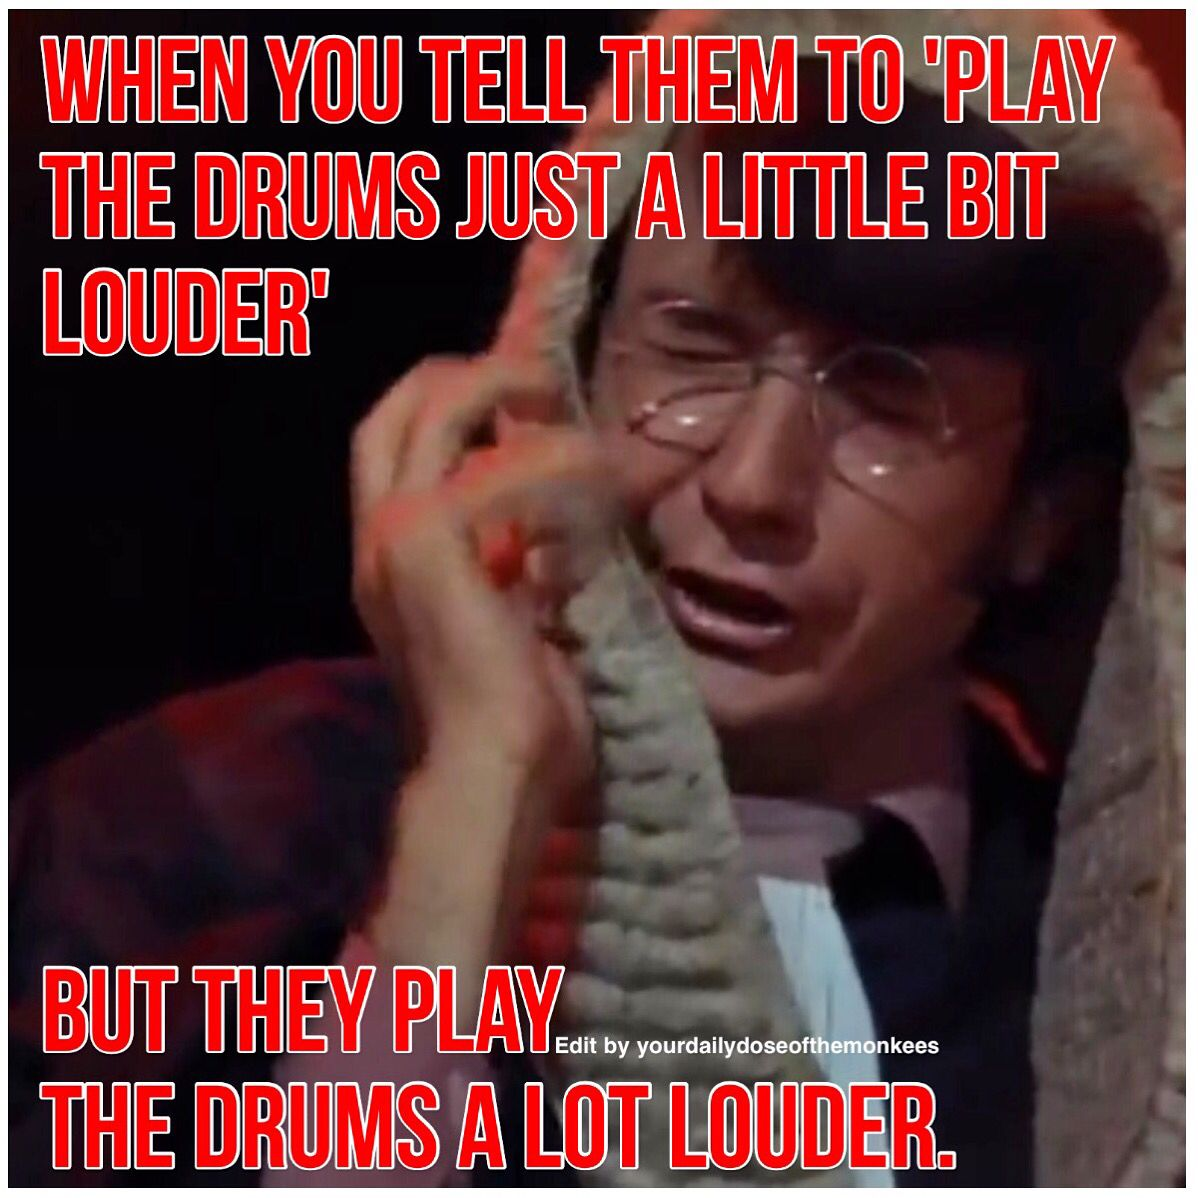 The Monkees Memes David Jones Mike Nesmith Peter Tork Micky Dolenz 1960's Monkees Facts Fun Facts Monkees Trivia  InductTheMonkees Rock And Roll Hall Of Fame Listen To The Band